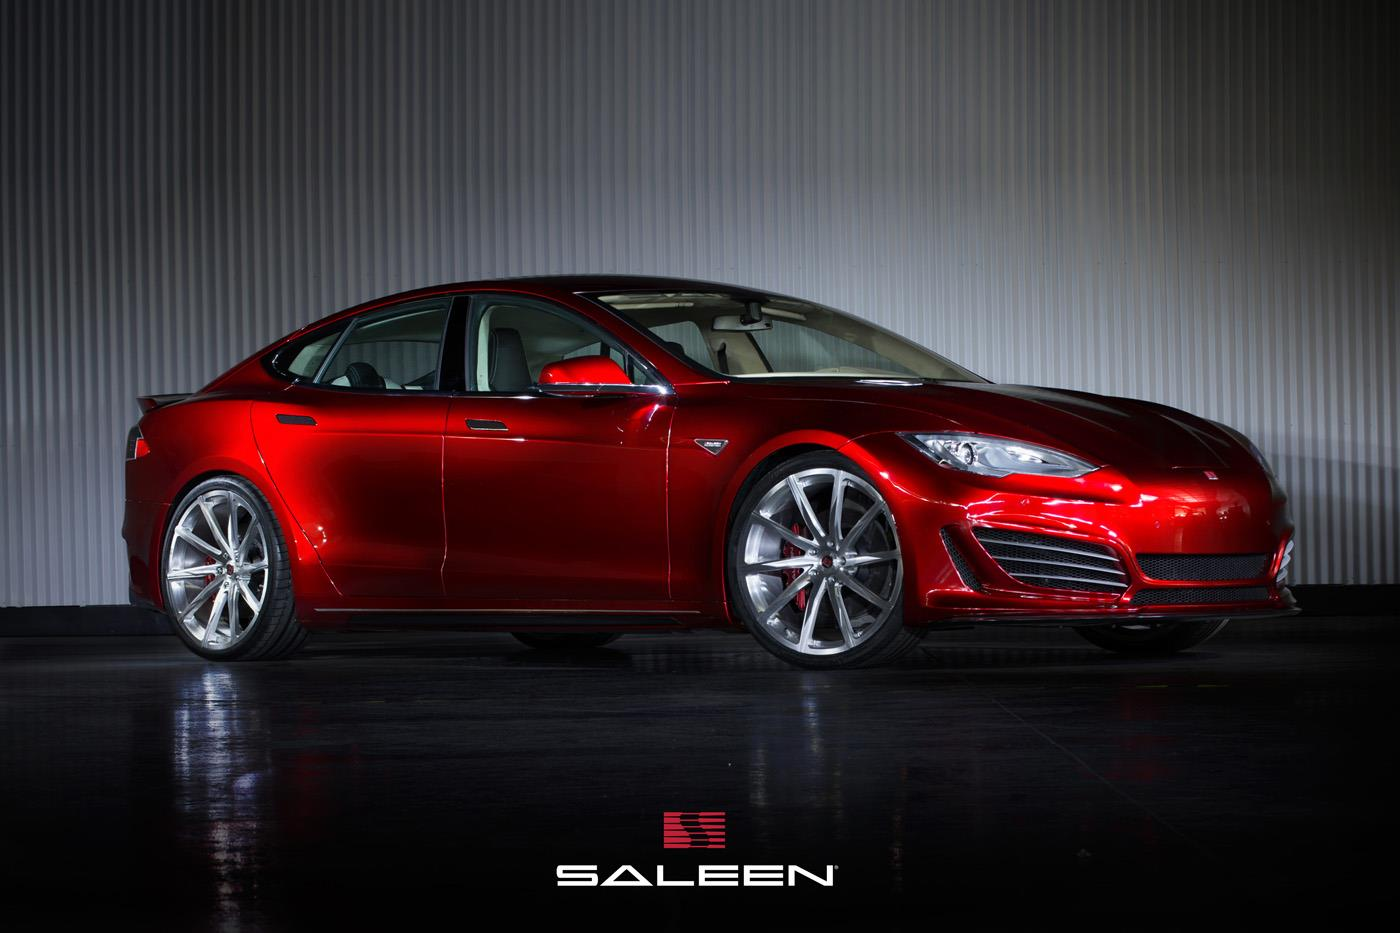 2014 Saleen FOURSIXTEEN